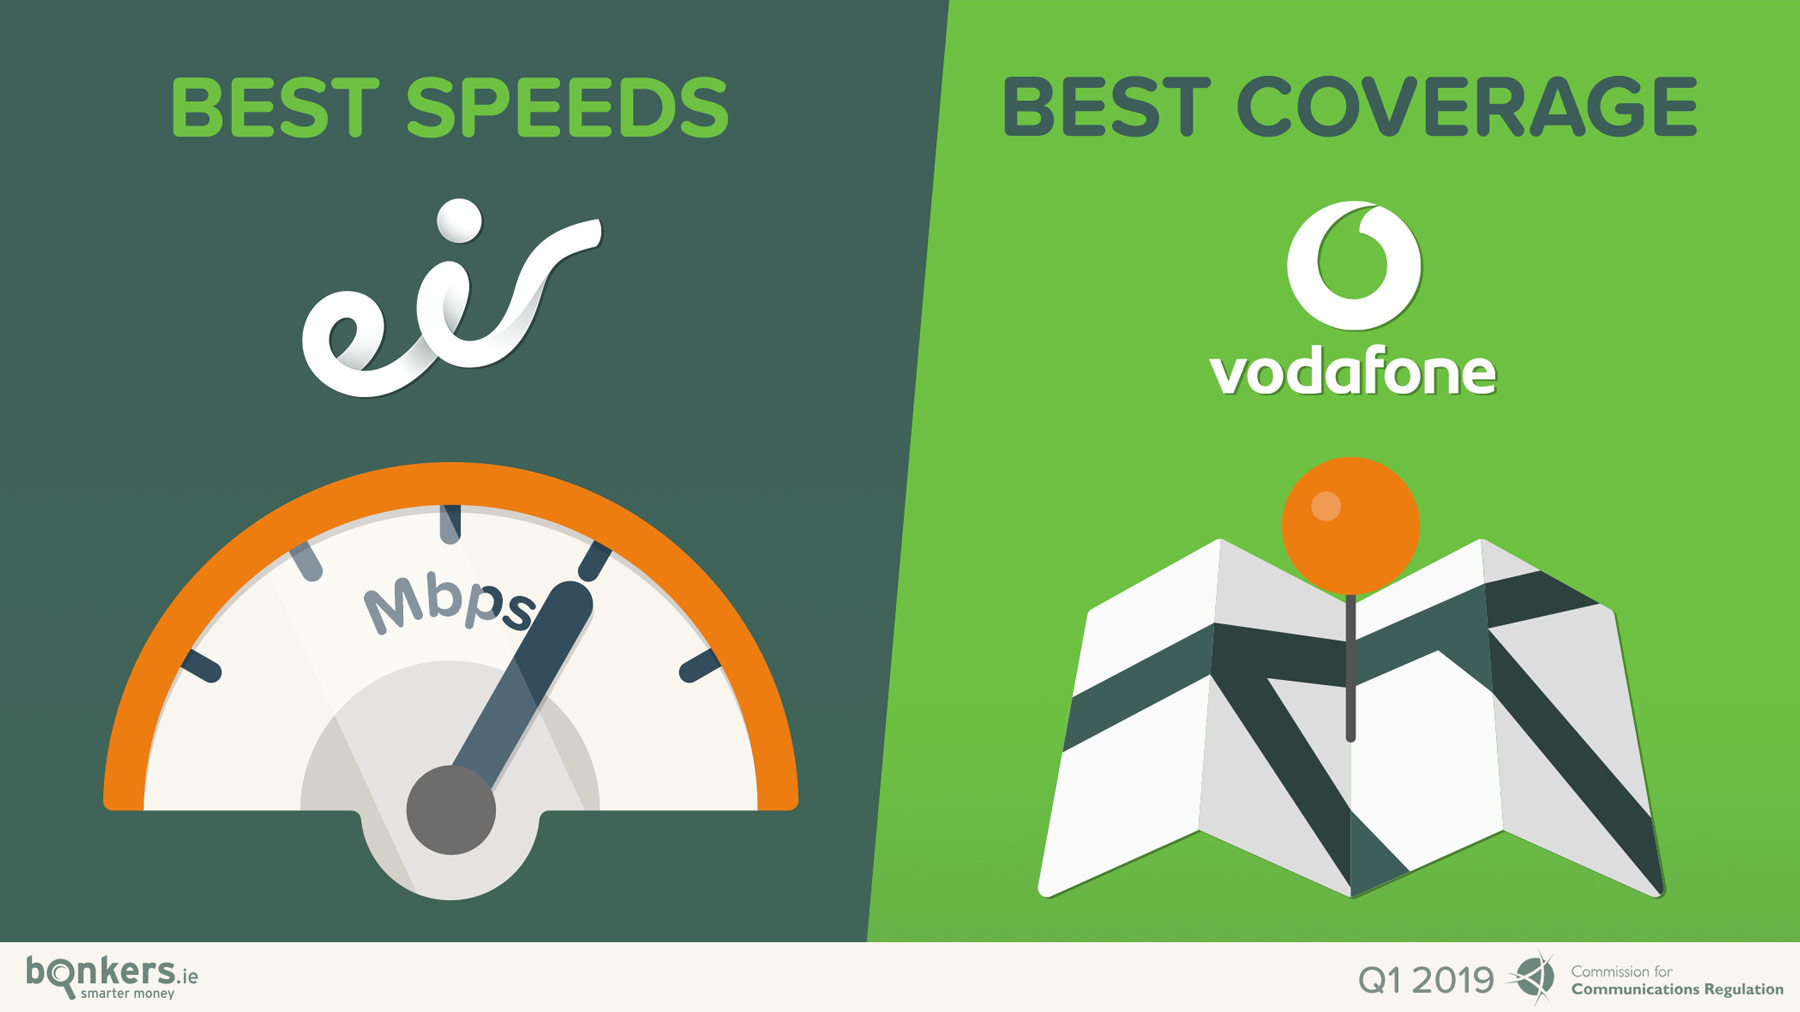 Which mobile provider has the best coverage in your area